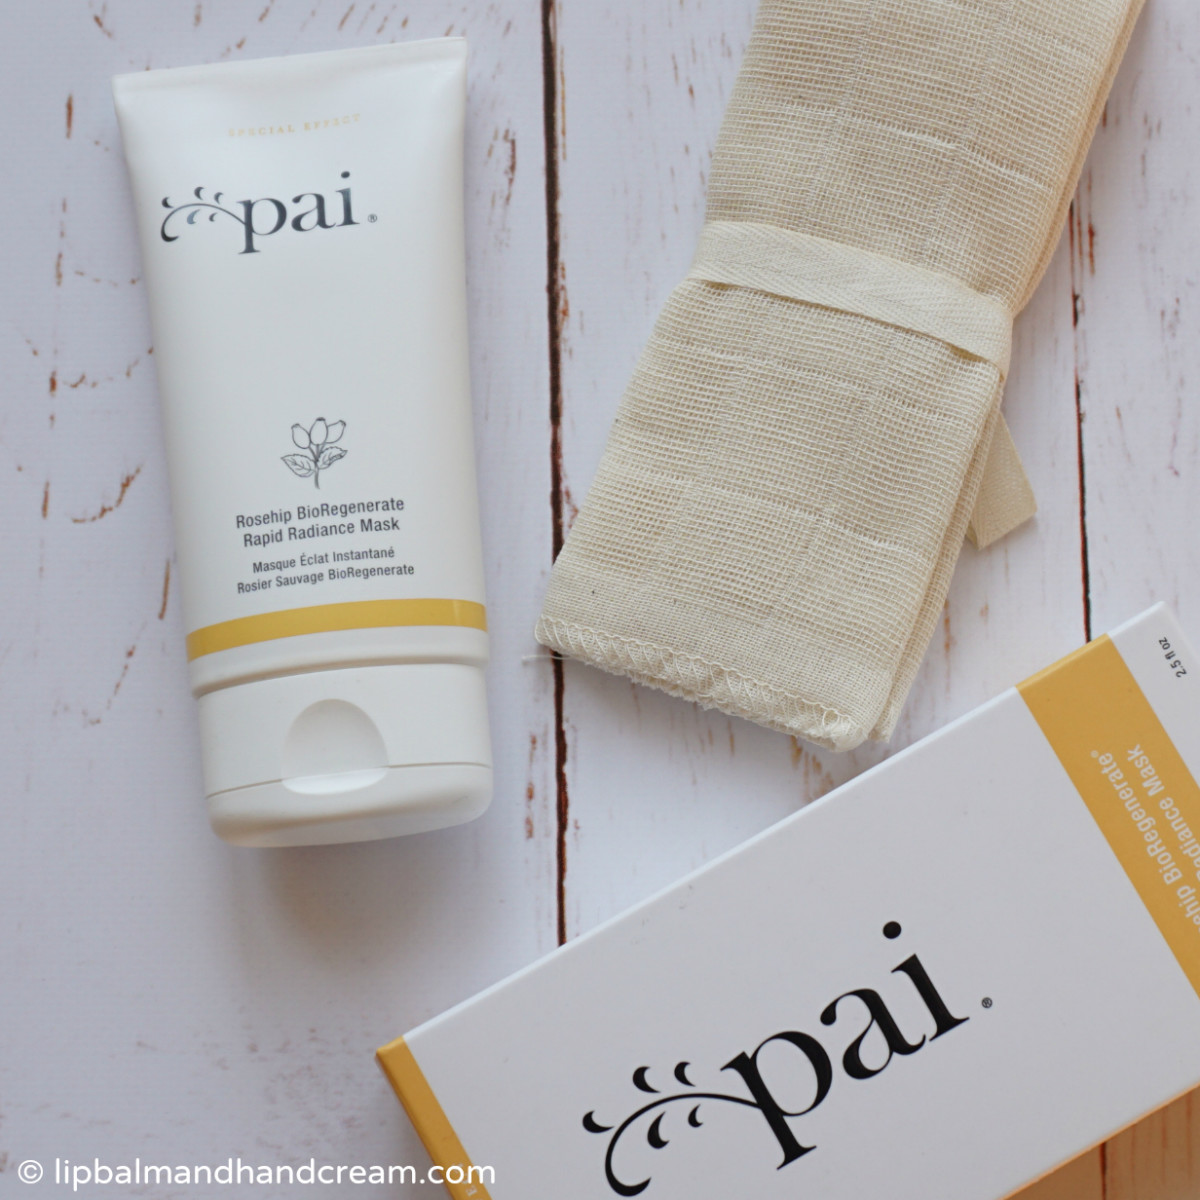 Pai's rapid radiance mask with their hero rosehip bioregenerate oil